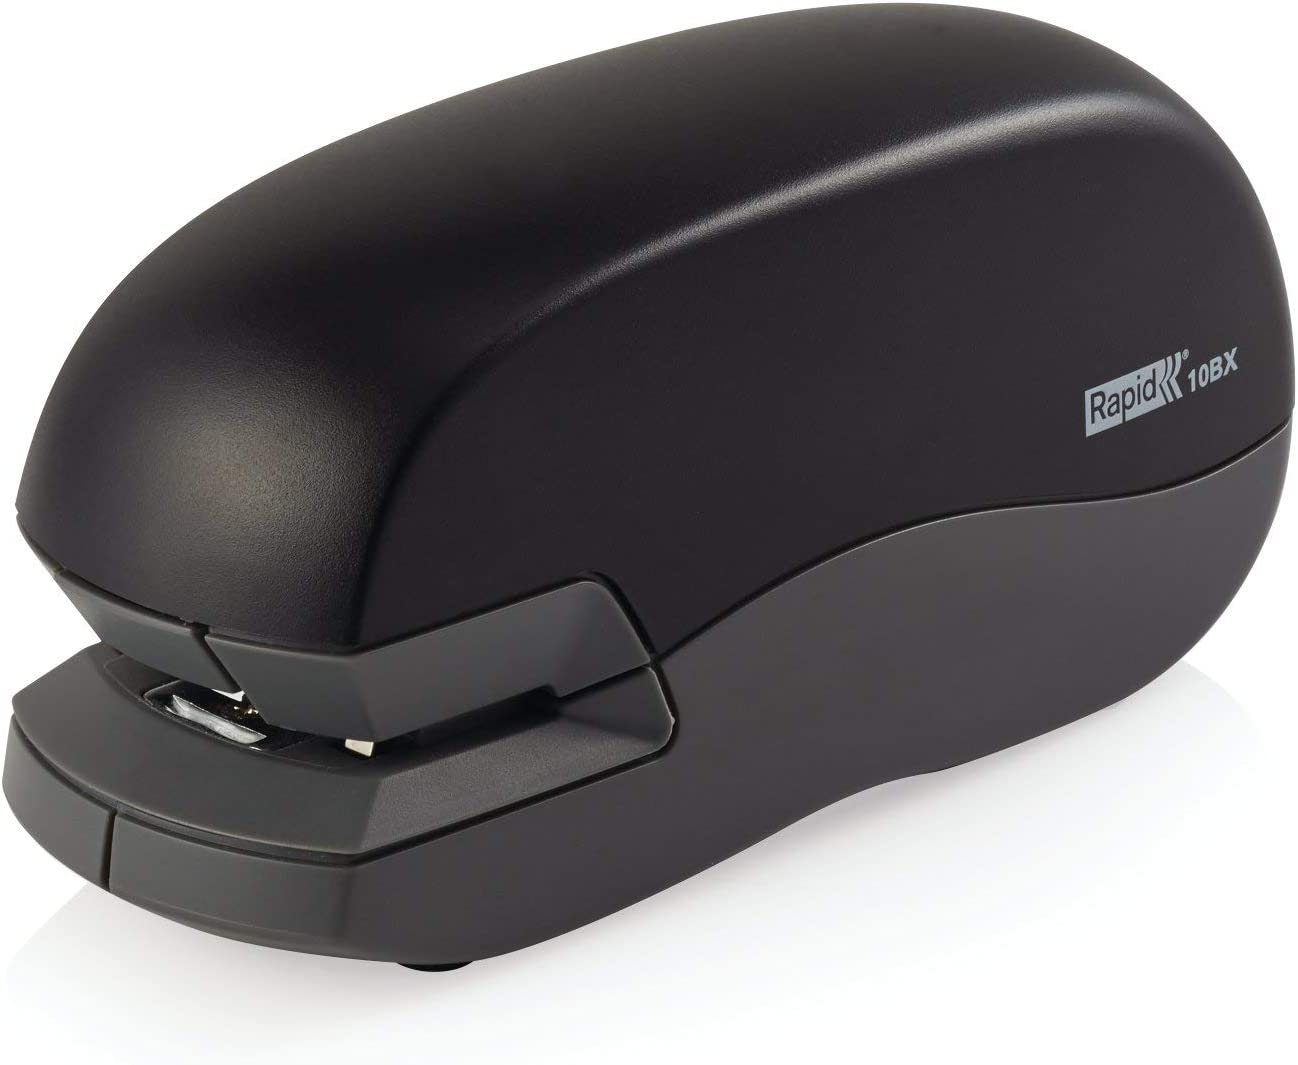 Outlet sale feature Rapid Electric Stapler Fixativ 10BX Operated free Battery Sheet 10